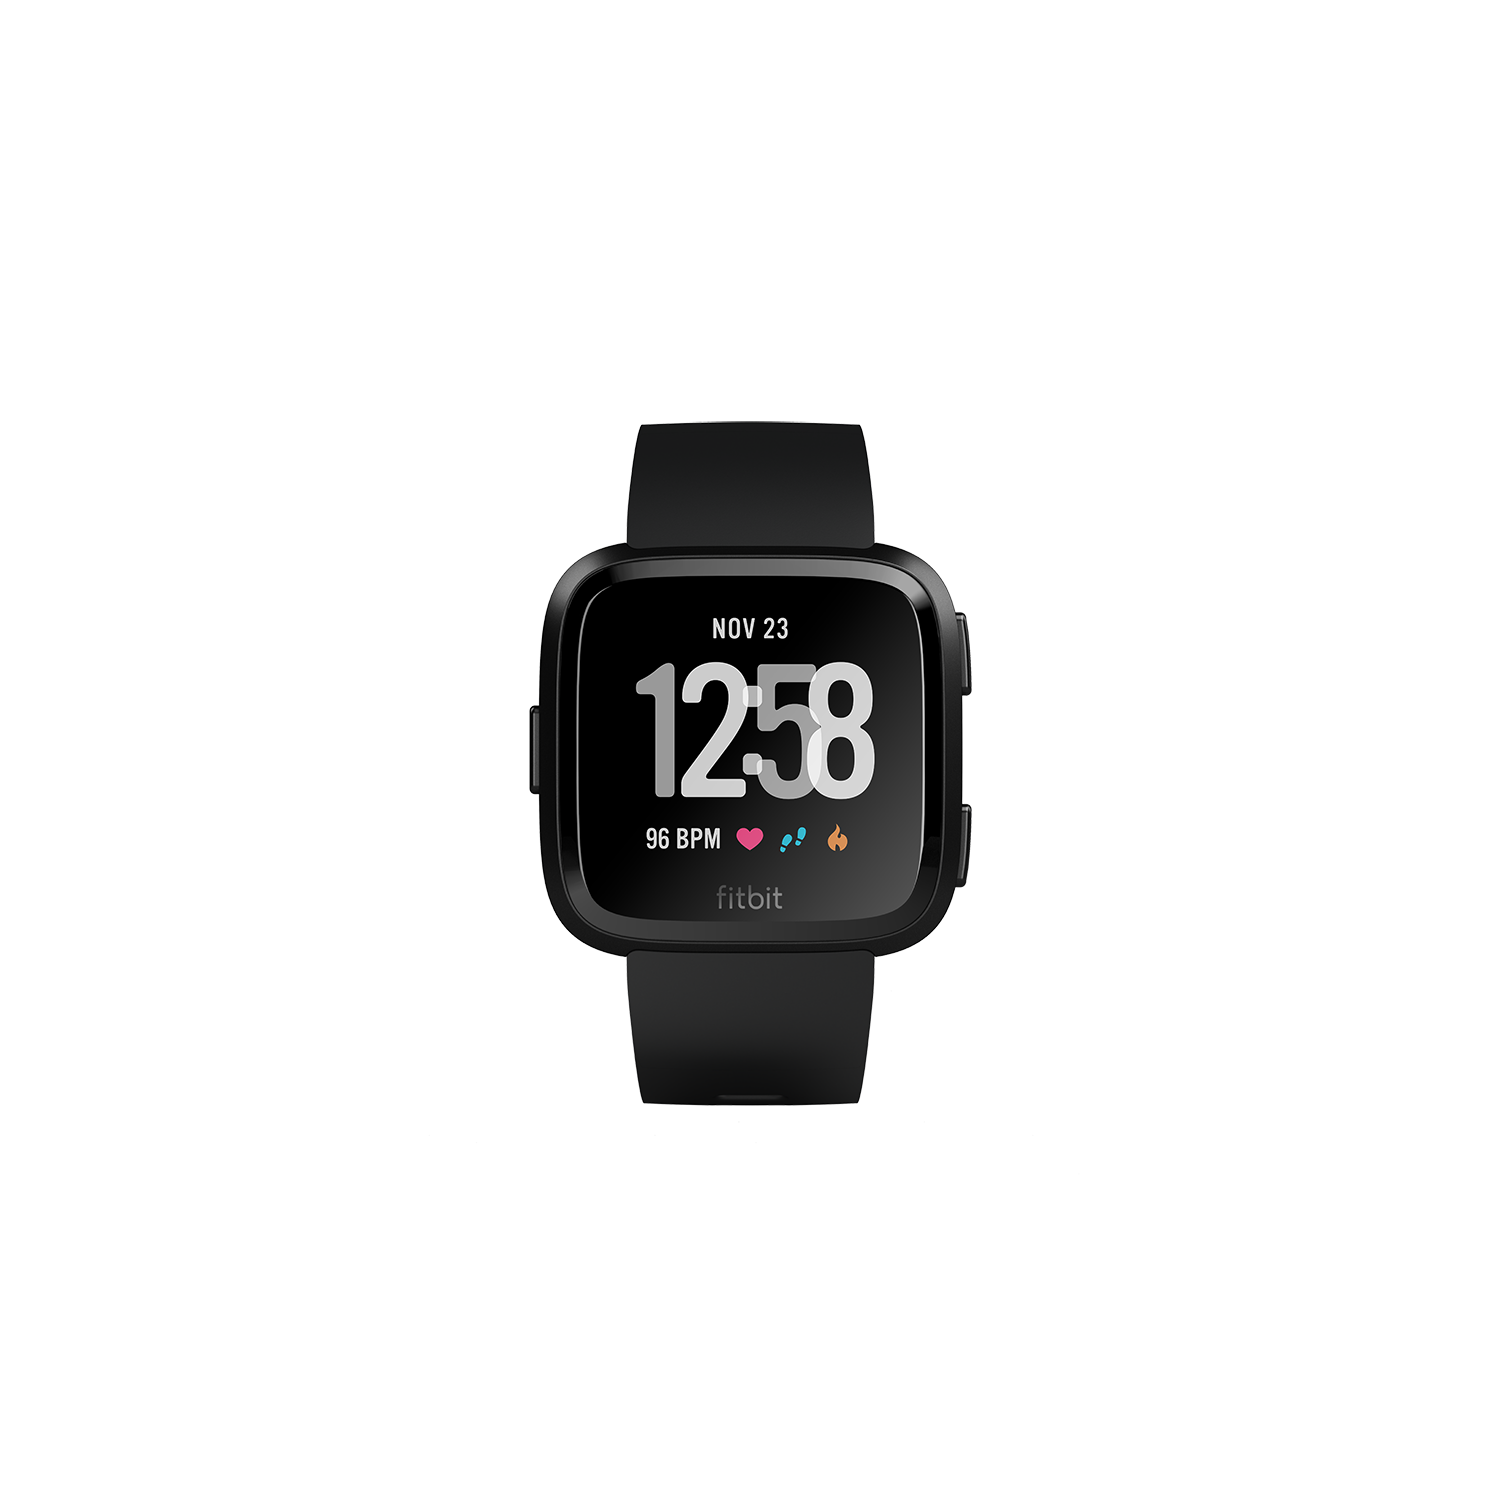 FitBit Versa Smart Watch with Heart Rate Monitor - Black